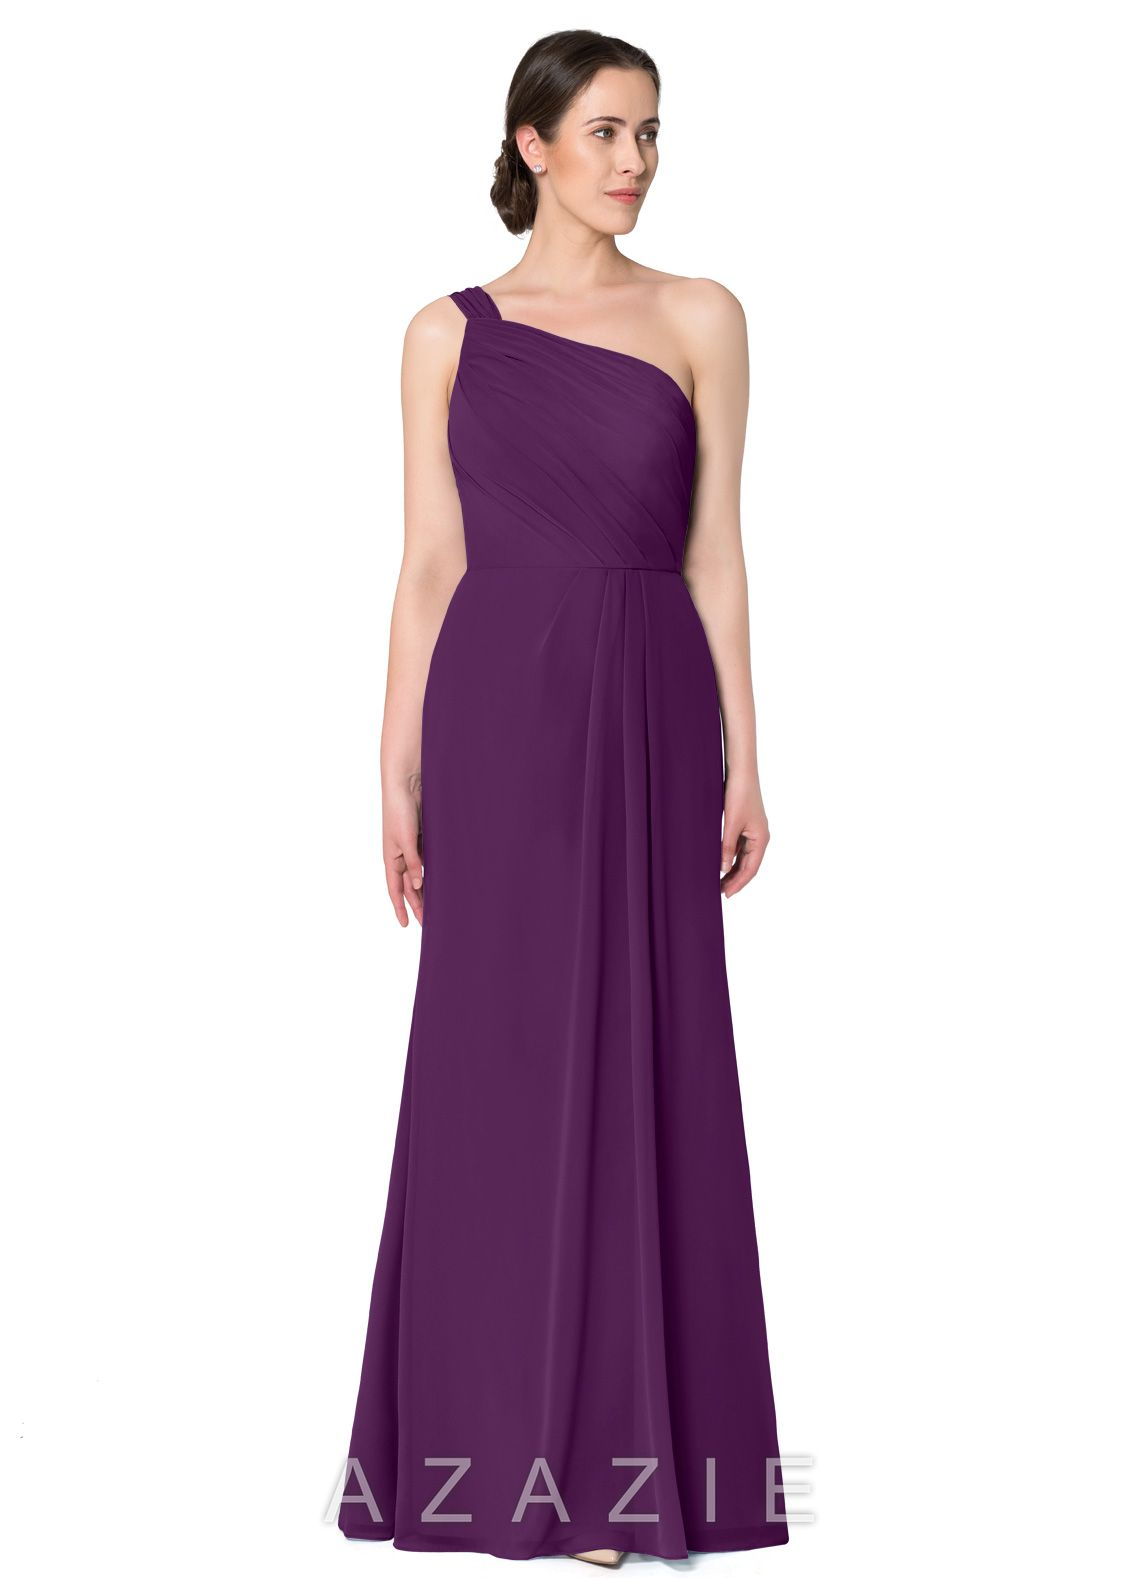 7a1e259bb0e Davids Bridal One Shoulder Plum Dress - Data Dynamic AG